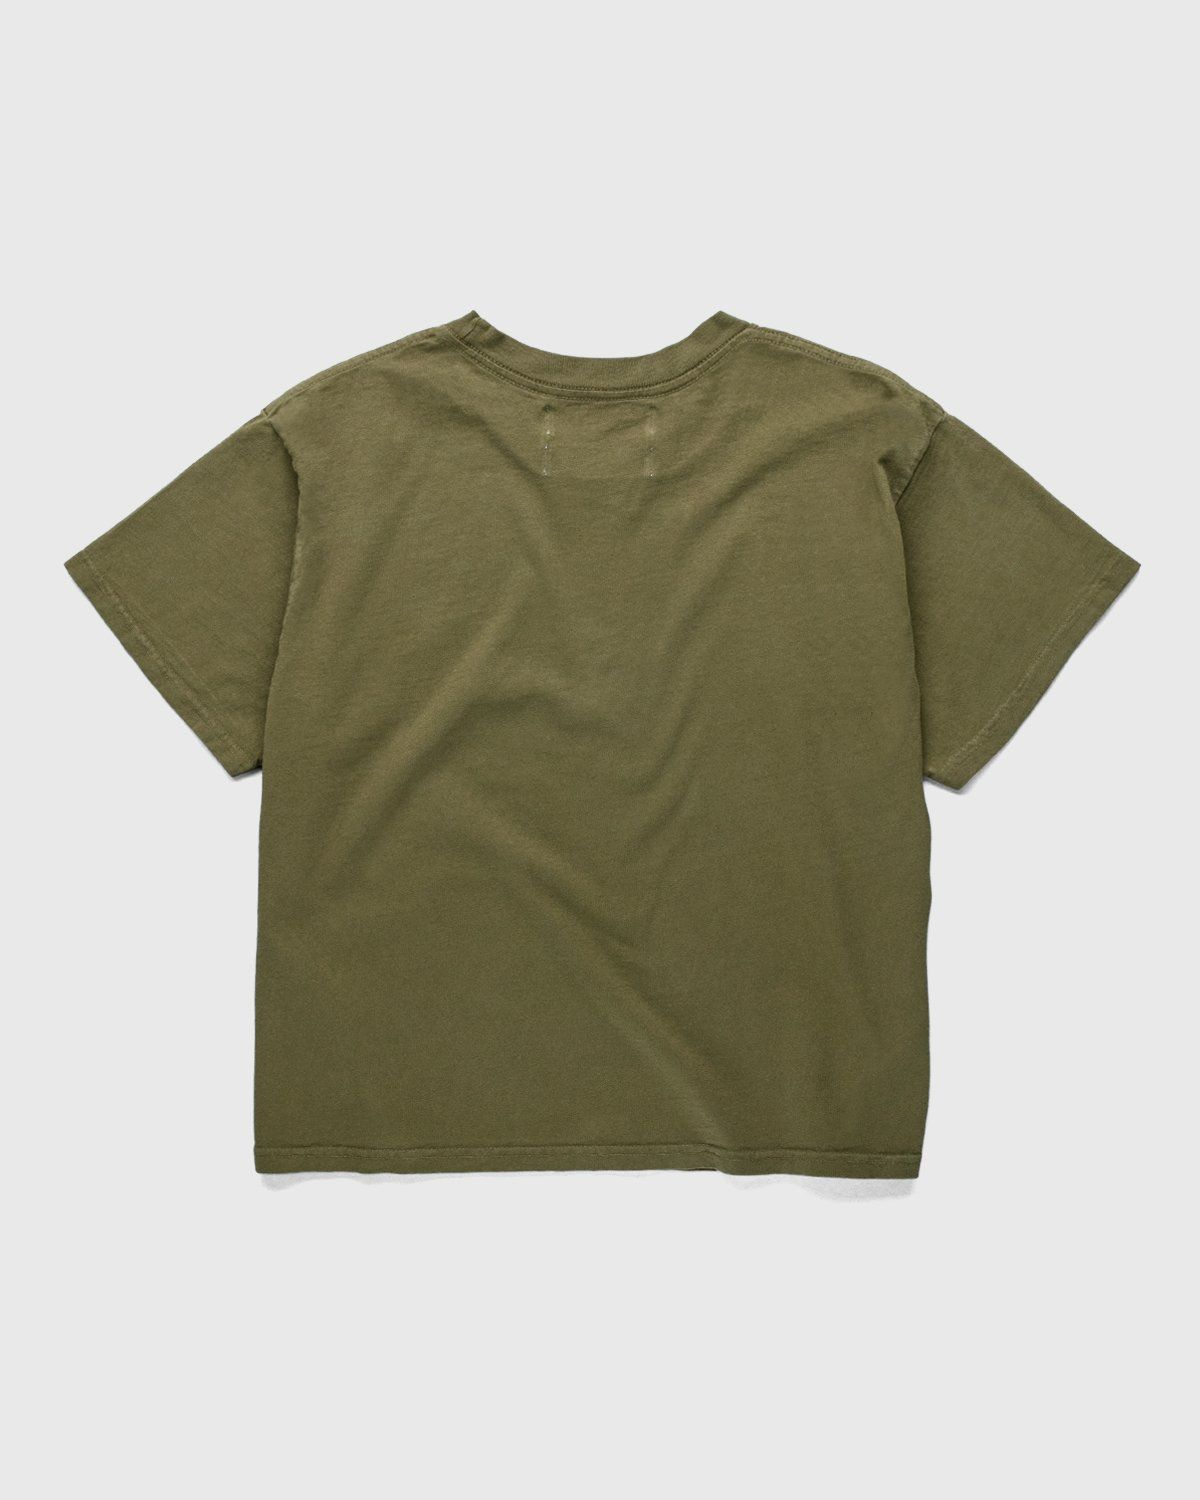 Darryl Brown — T-Shirt Military Olive - Image 2